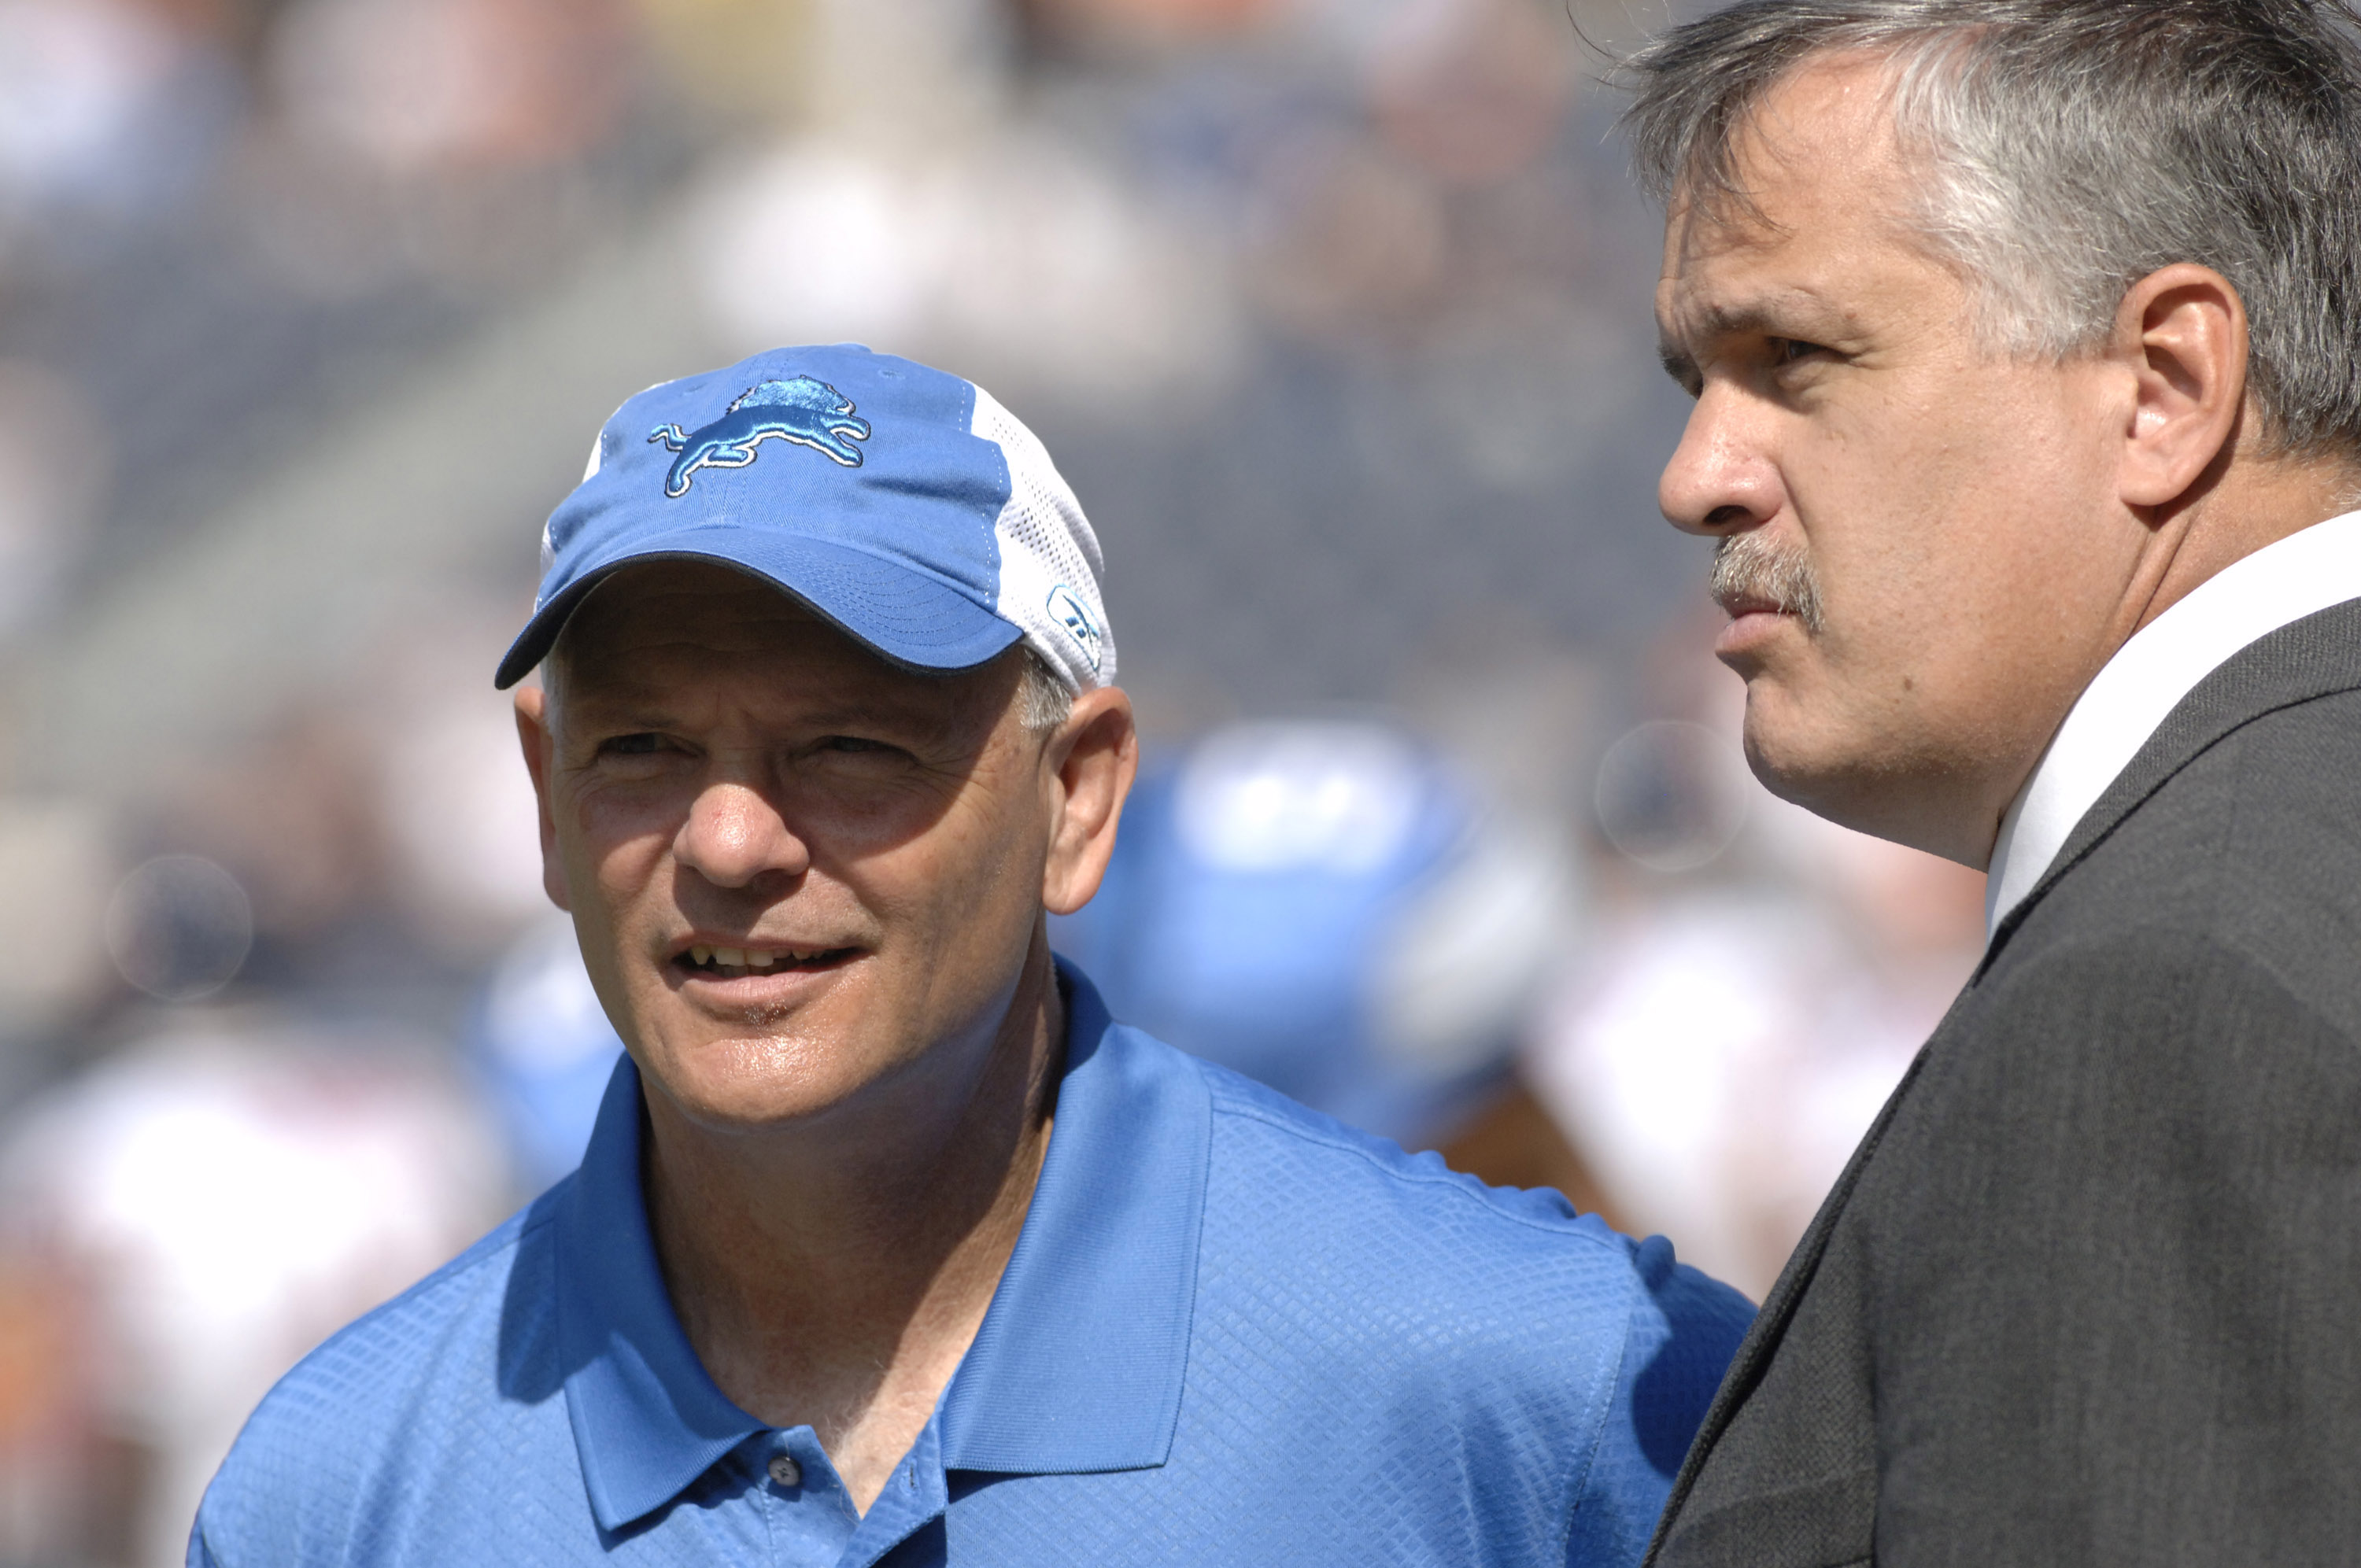 Detroit Lions coach Ron Marinelli with president Matt Millen on the sidelines during a game between the Chicago Bears and Detroit Lions at Soldier Field in Chicago, Illinois on September 17, 2006.  The Bears won 34 - 7.  (Photo by Al Messerschmidt/Getty I